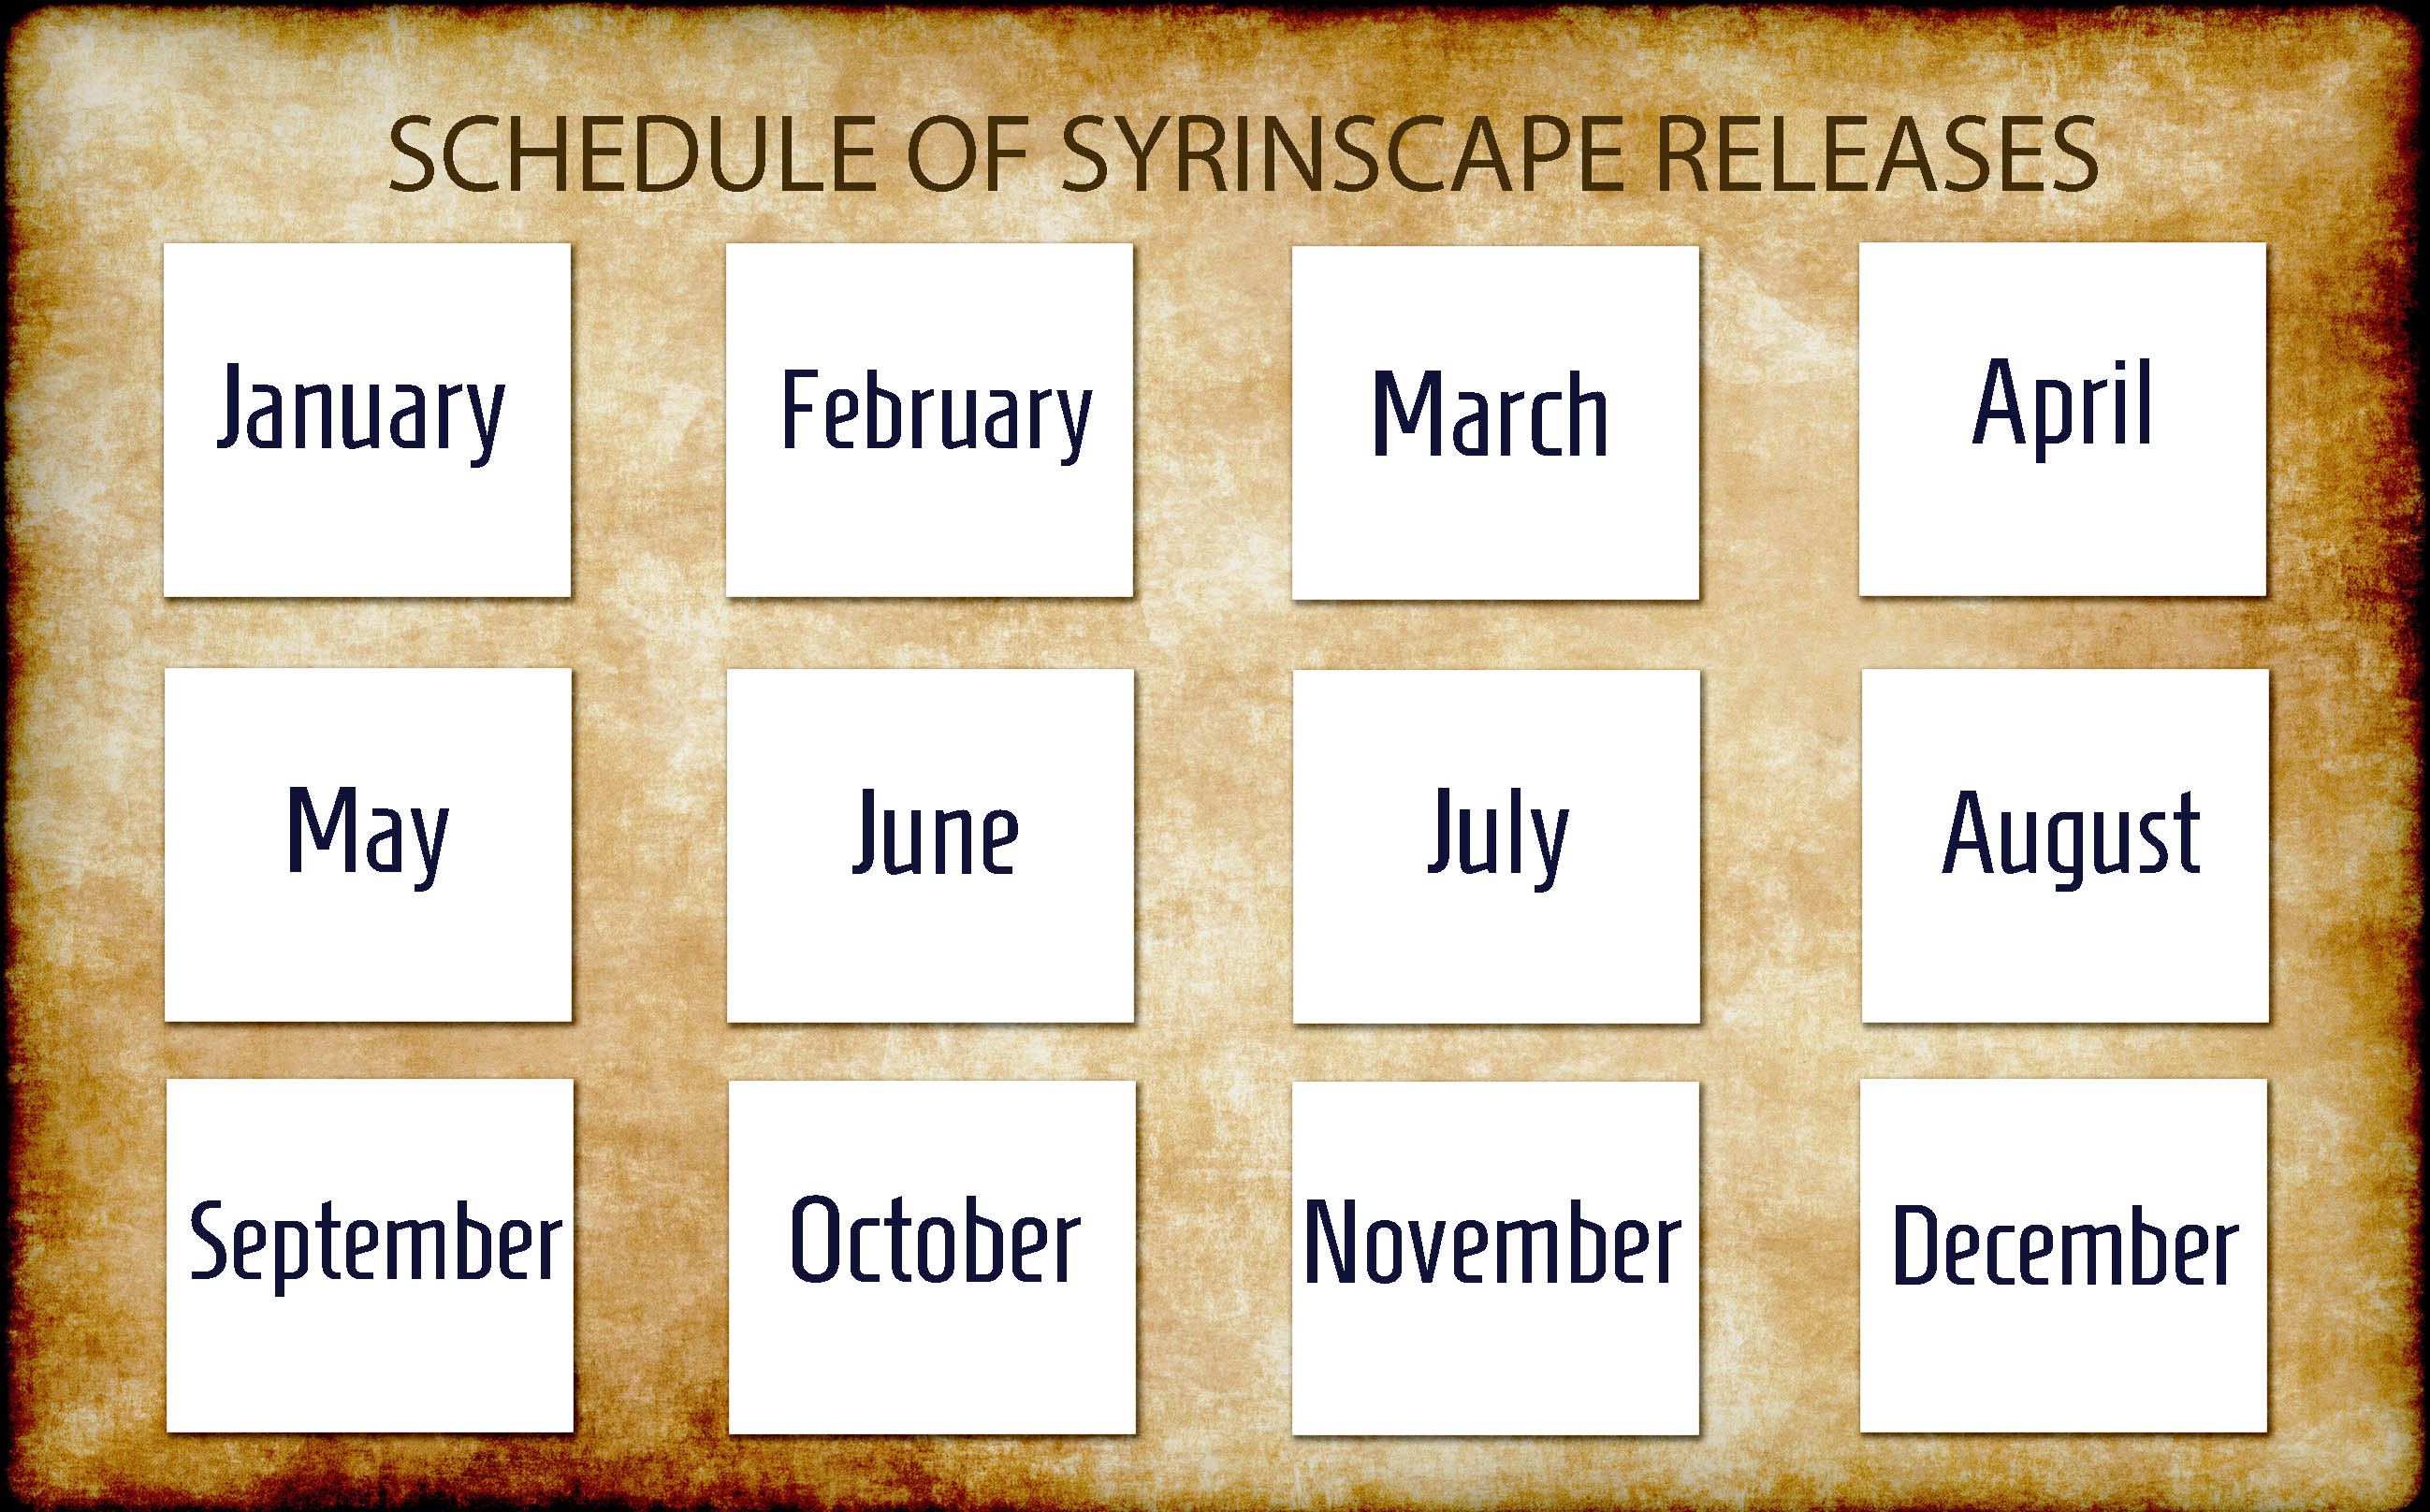 see the schedule of Syrinscape releases